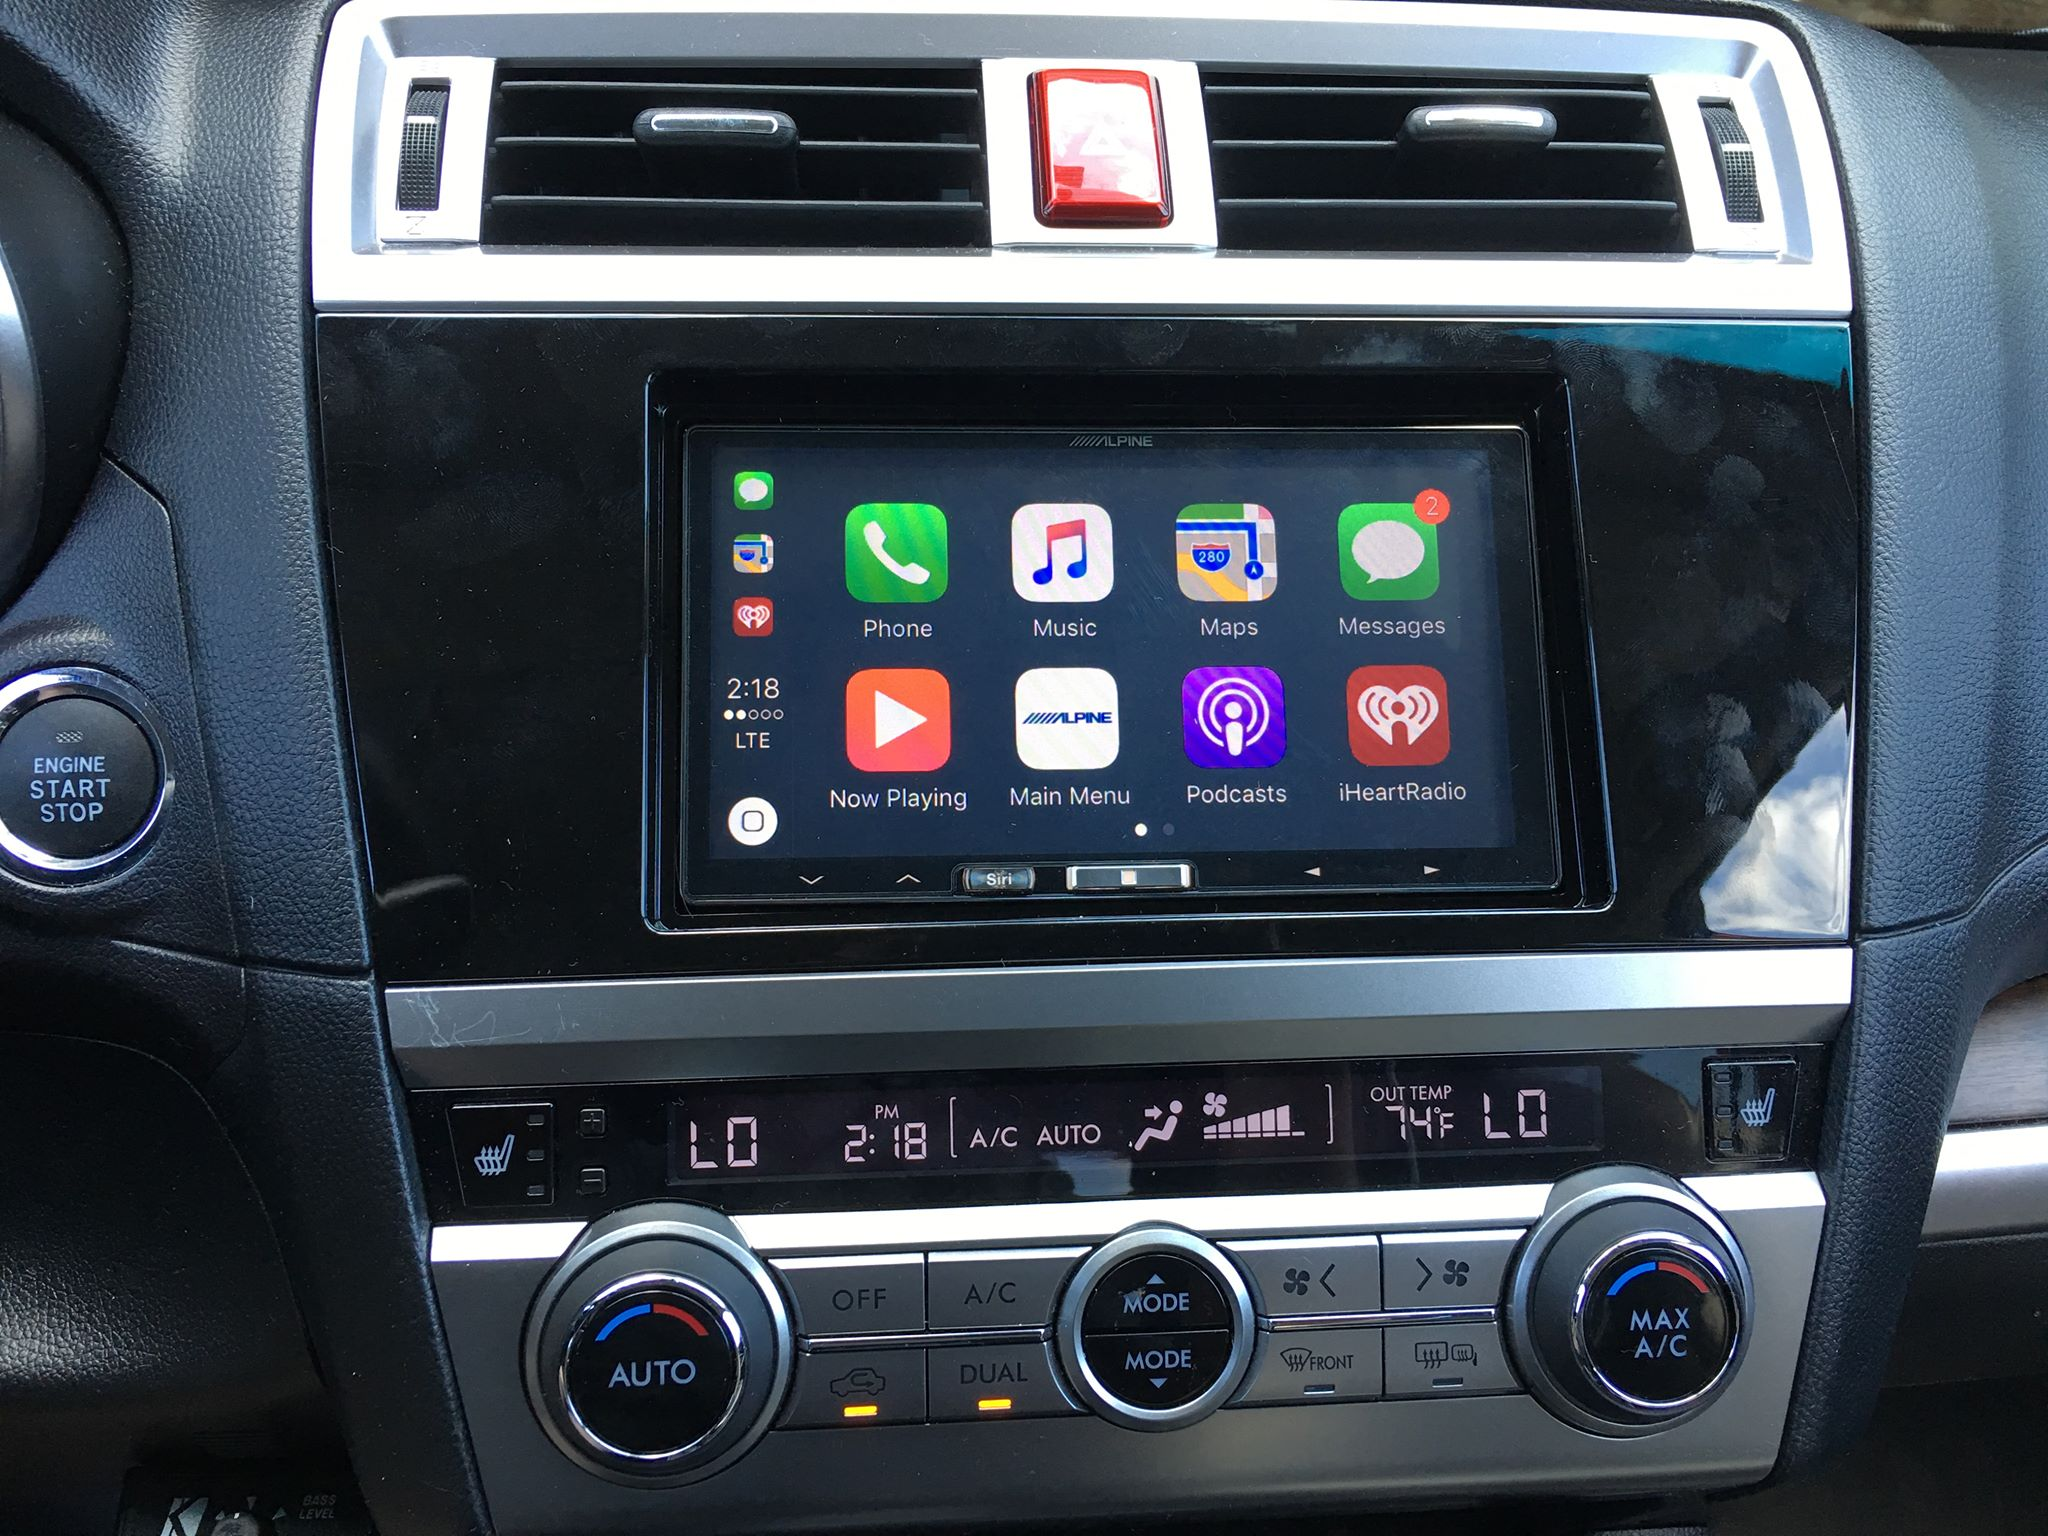 Carplay Installs Alpine Ilx 107 In A 2016 Subaru Outback Carplay